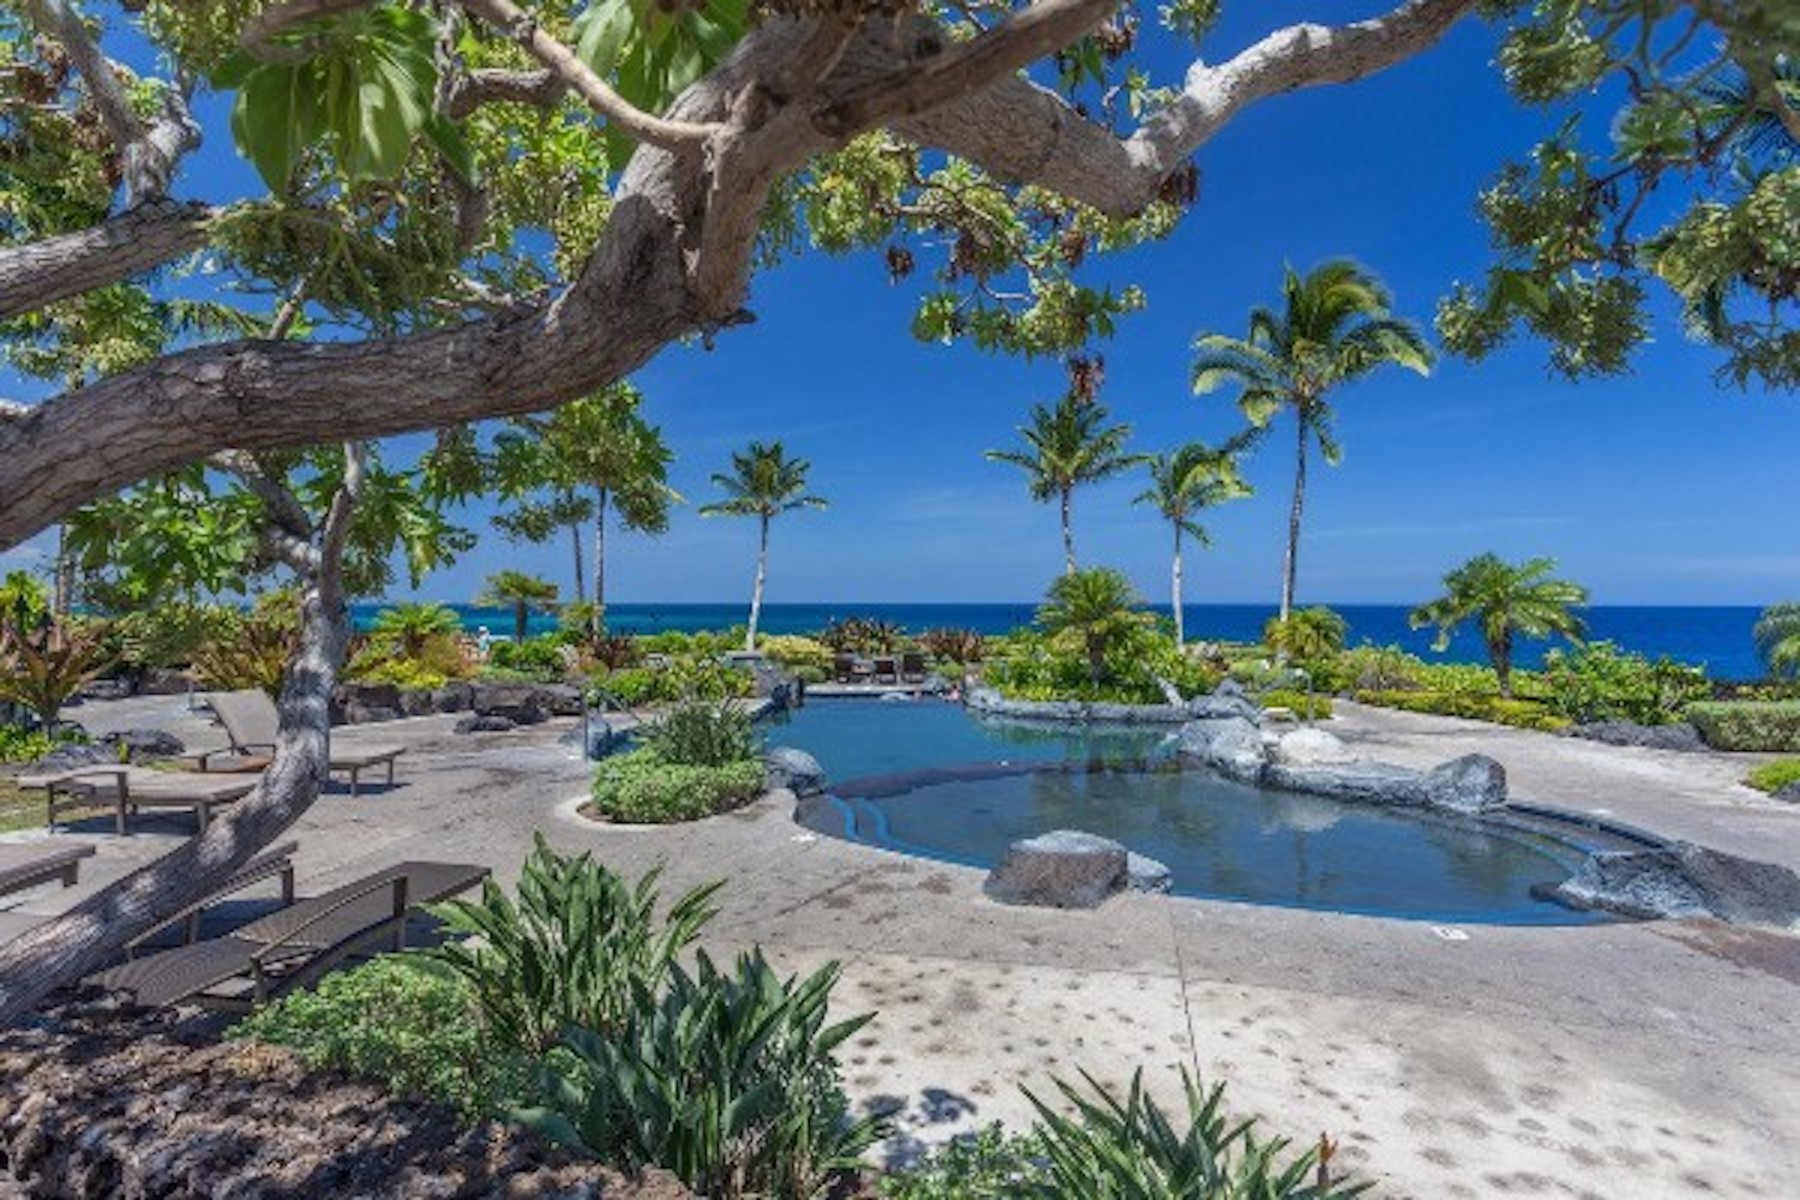 Condominium for Sale at Halii Kai 69-1033 Nawahine Pl #21D Waikoloa, Hawaii, 96738 United States